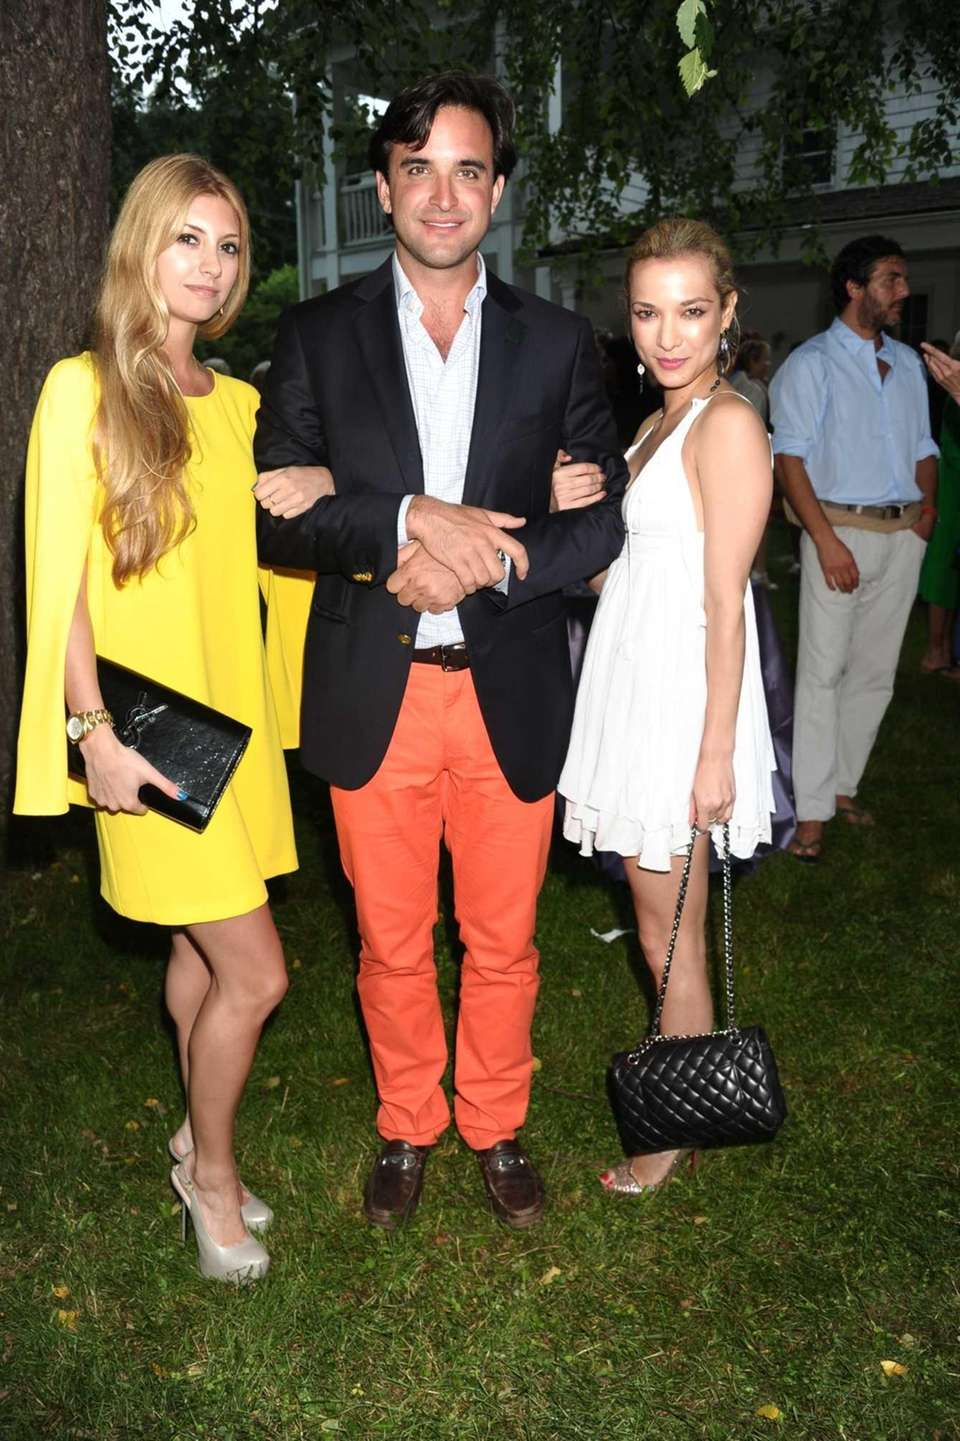 Gabrielle Giacalone, Chris Edson, and Lara Platt attend